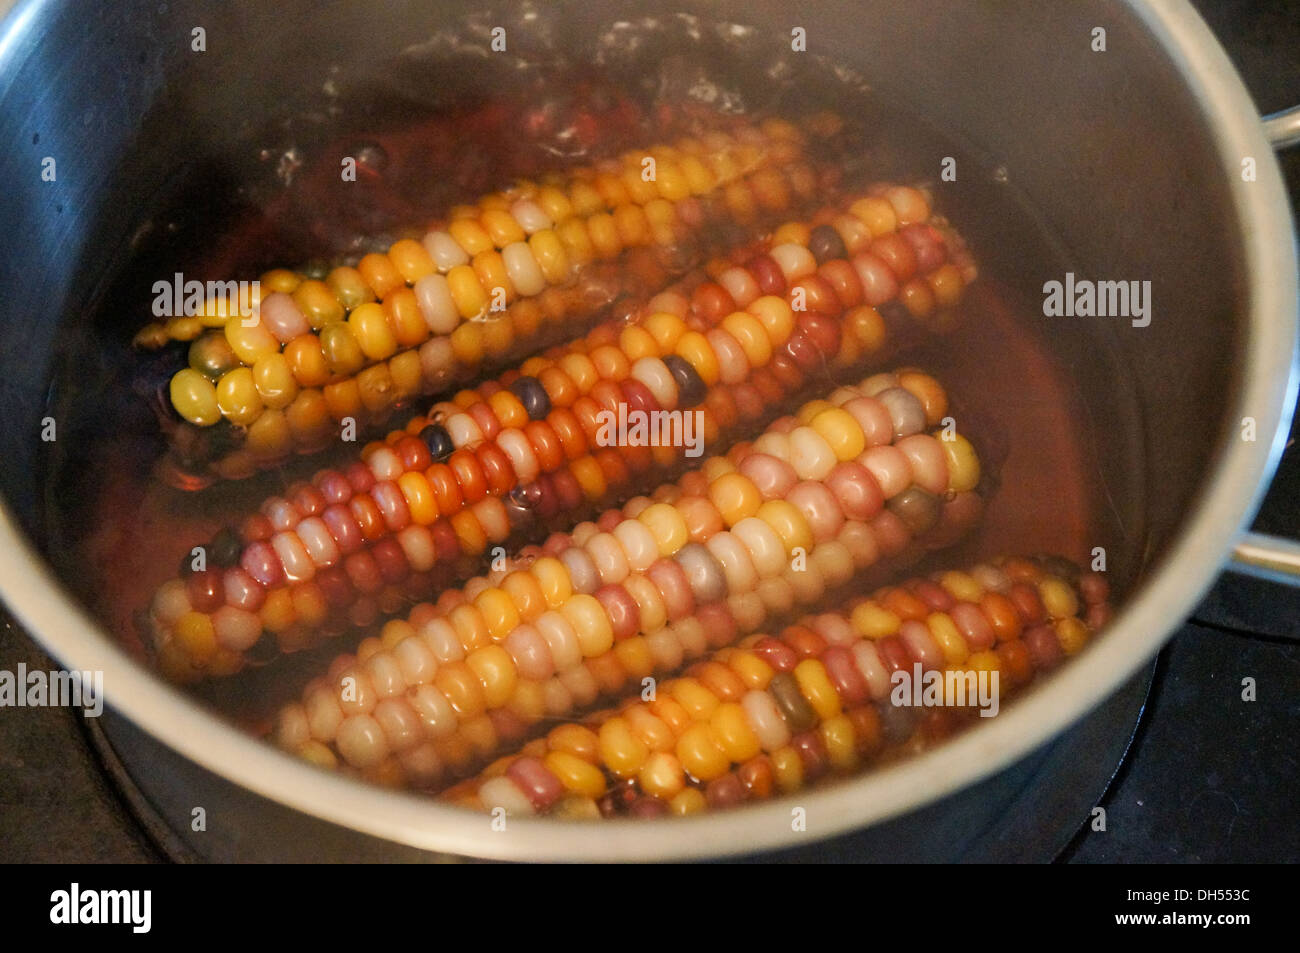 Boil Indian corn - Stock Image